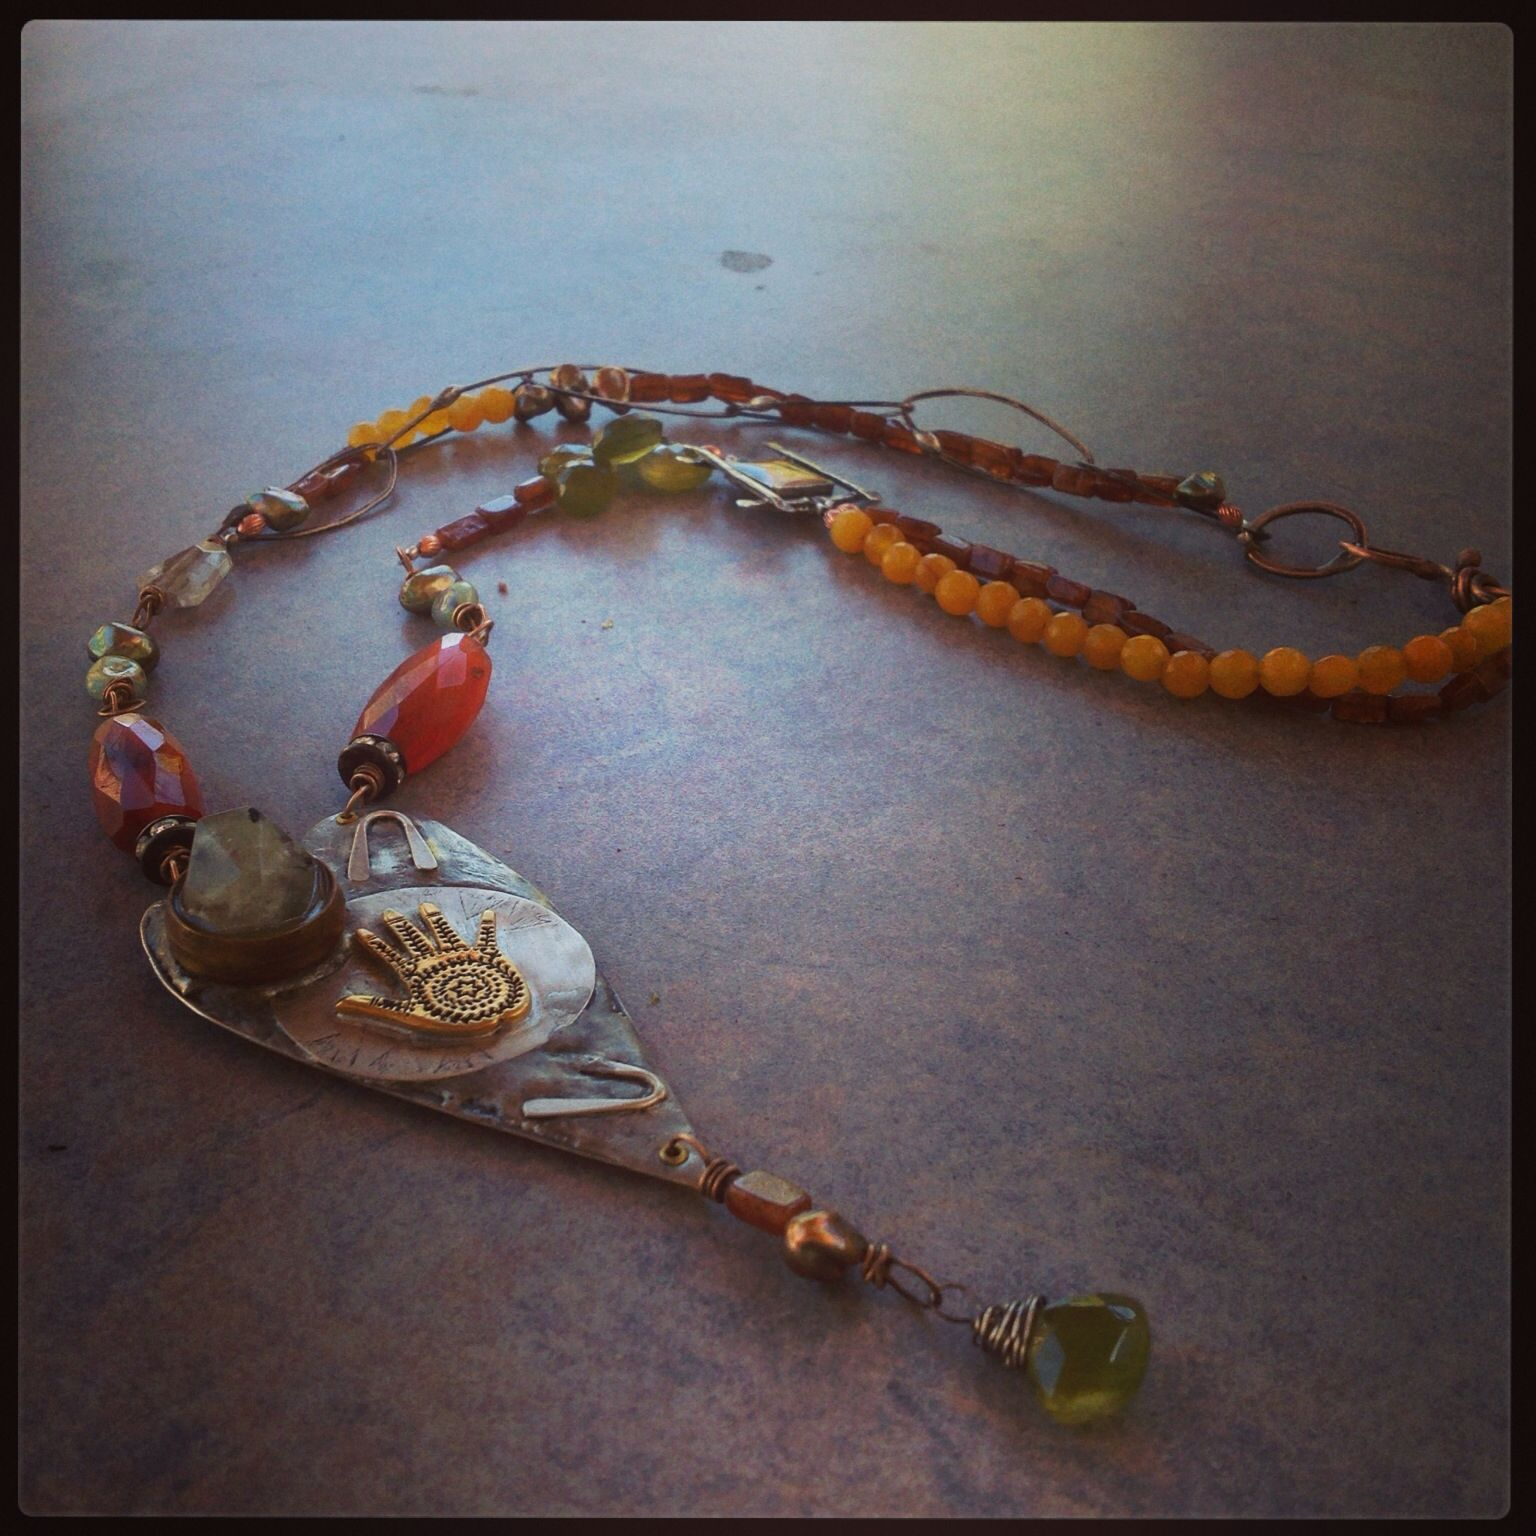 """Assemblage Necklace, """"My heart in your hand"""" by Jane Hermann Simons"""